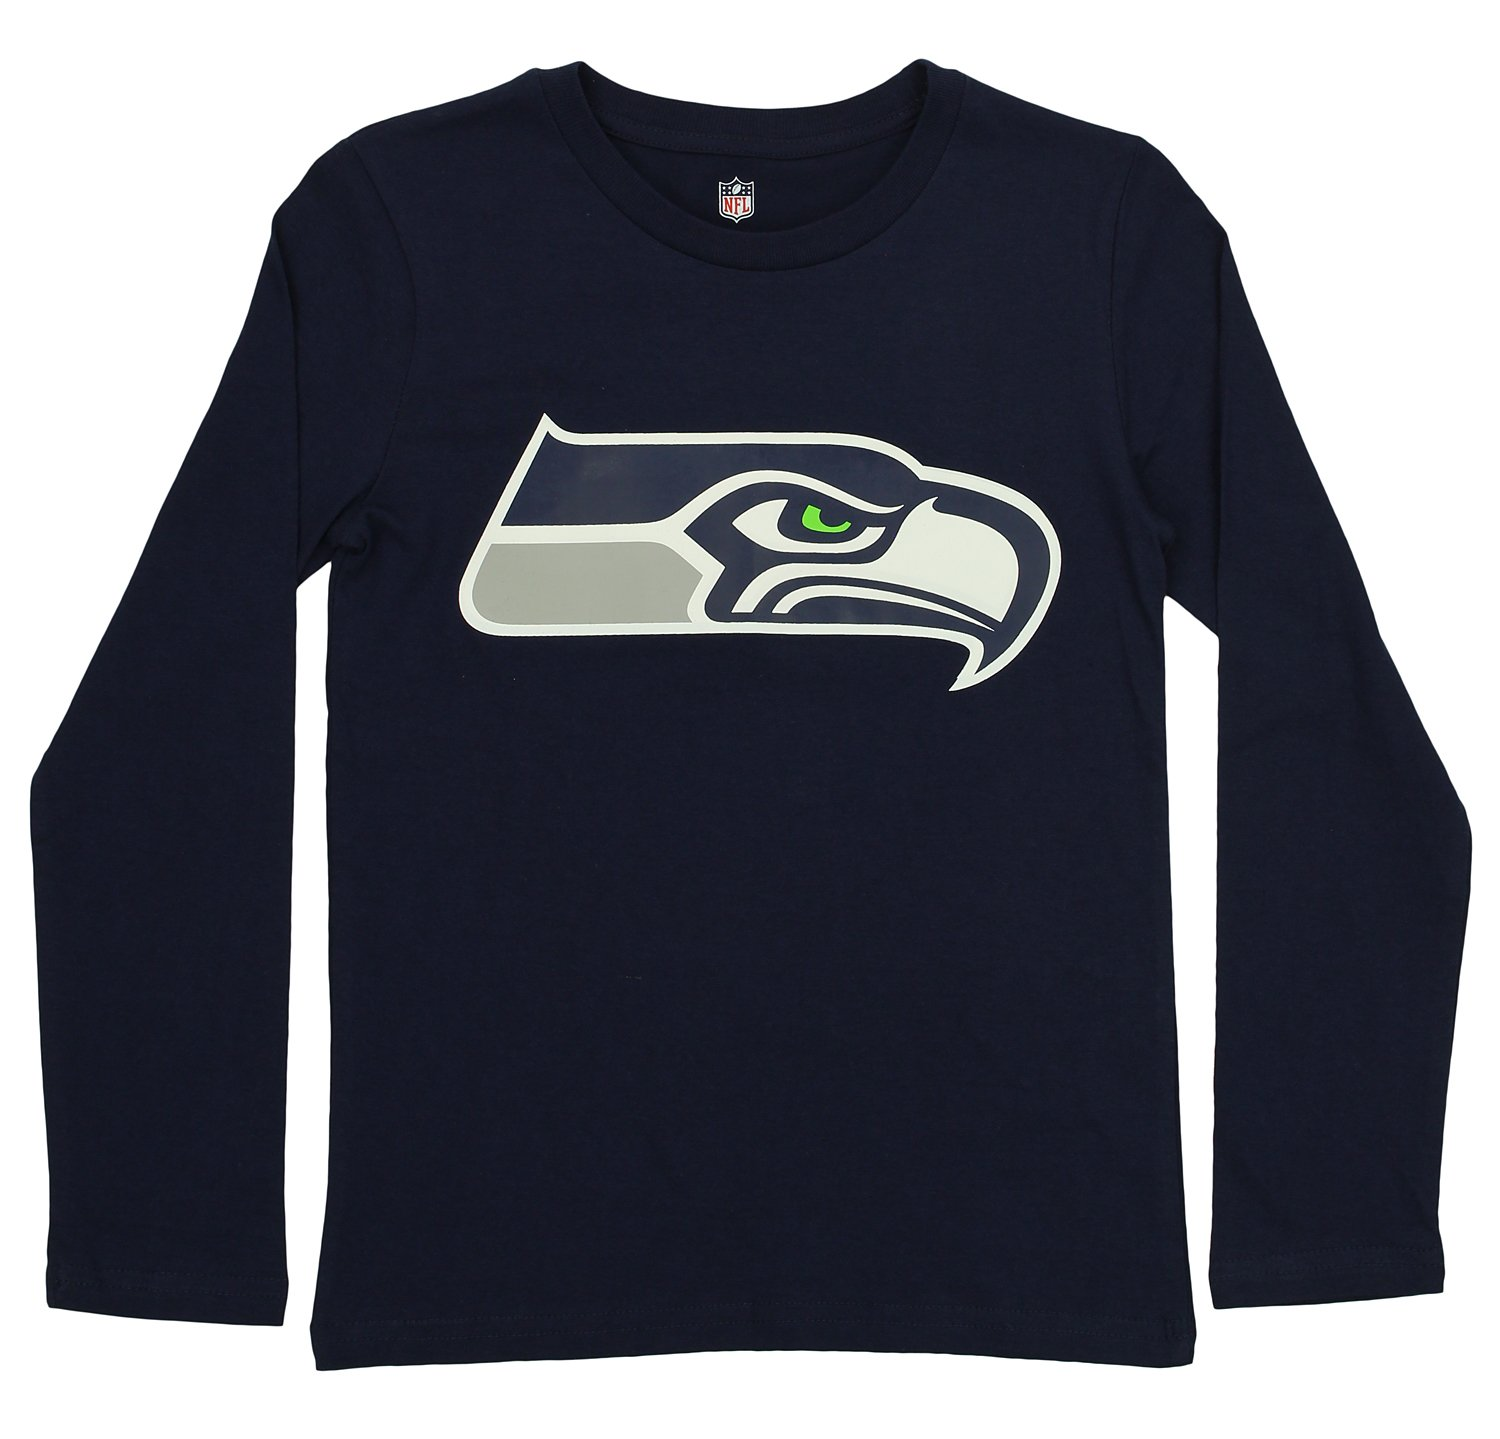 OuterStuff NFL Youth Seattle Seahawks Long Sleeve Team Logo Tee, Navy